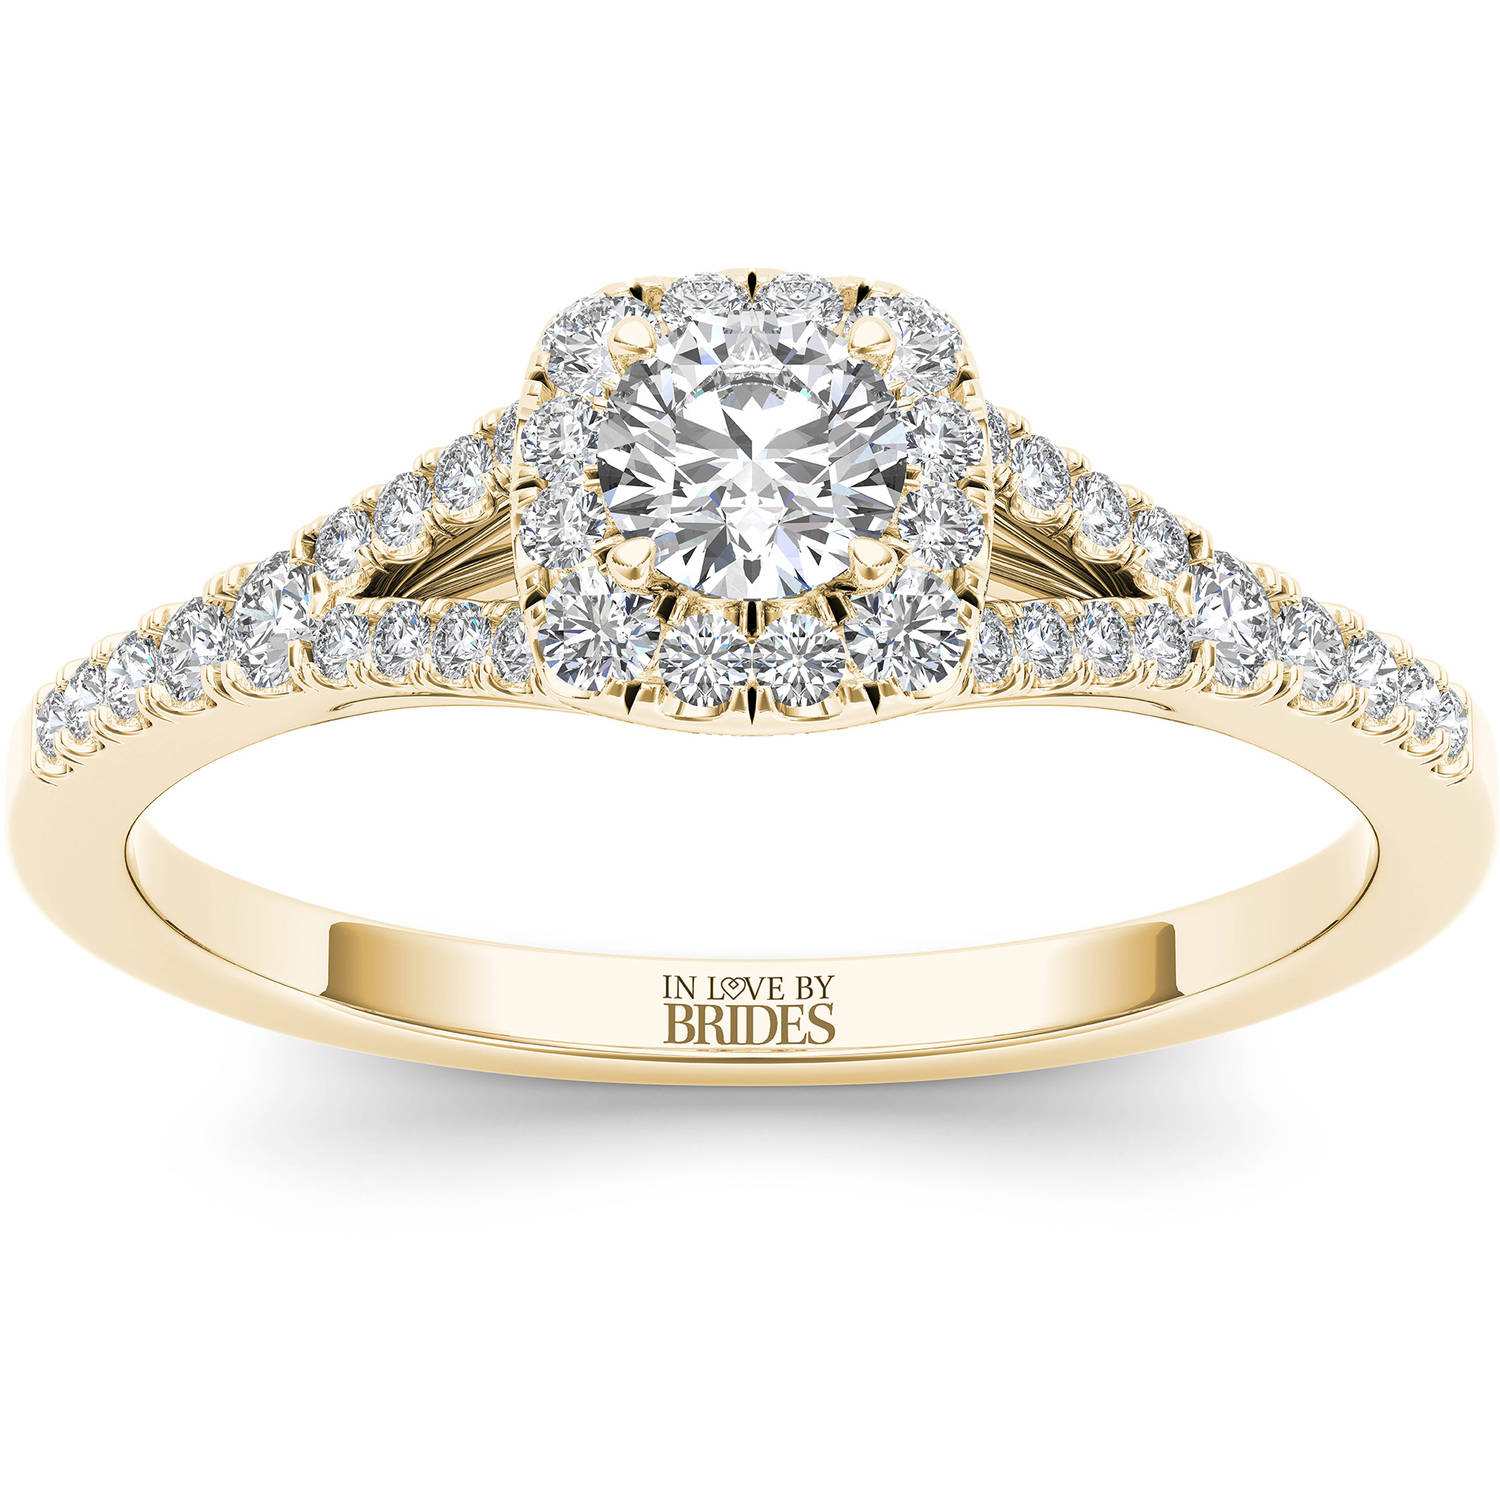 IN LOVE BY BRIDES 3/8 Carat T.W. Certified Diamond Cushion Halo 14kt Yellow Gold Engagement Ring